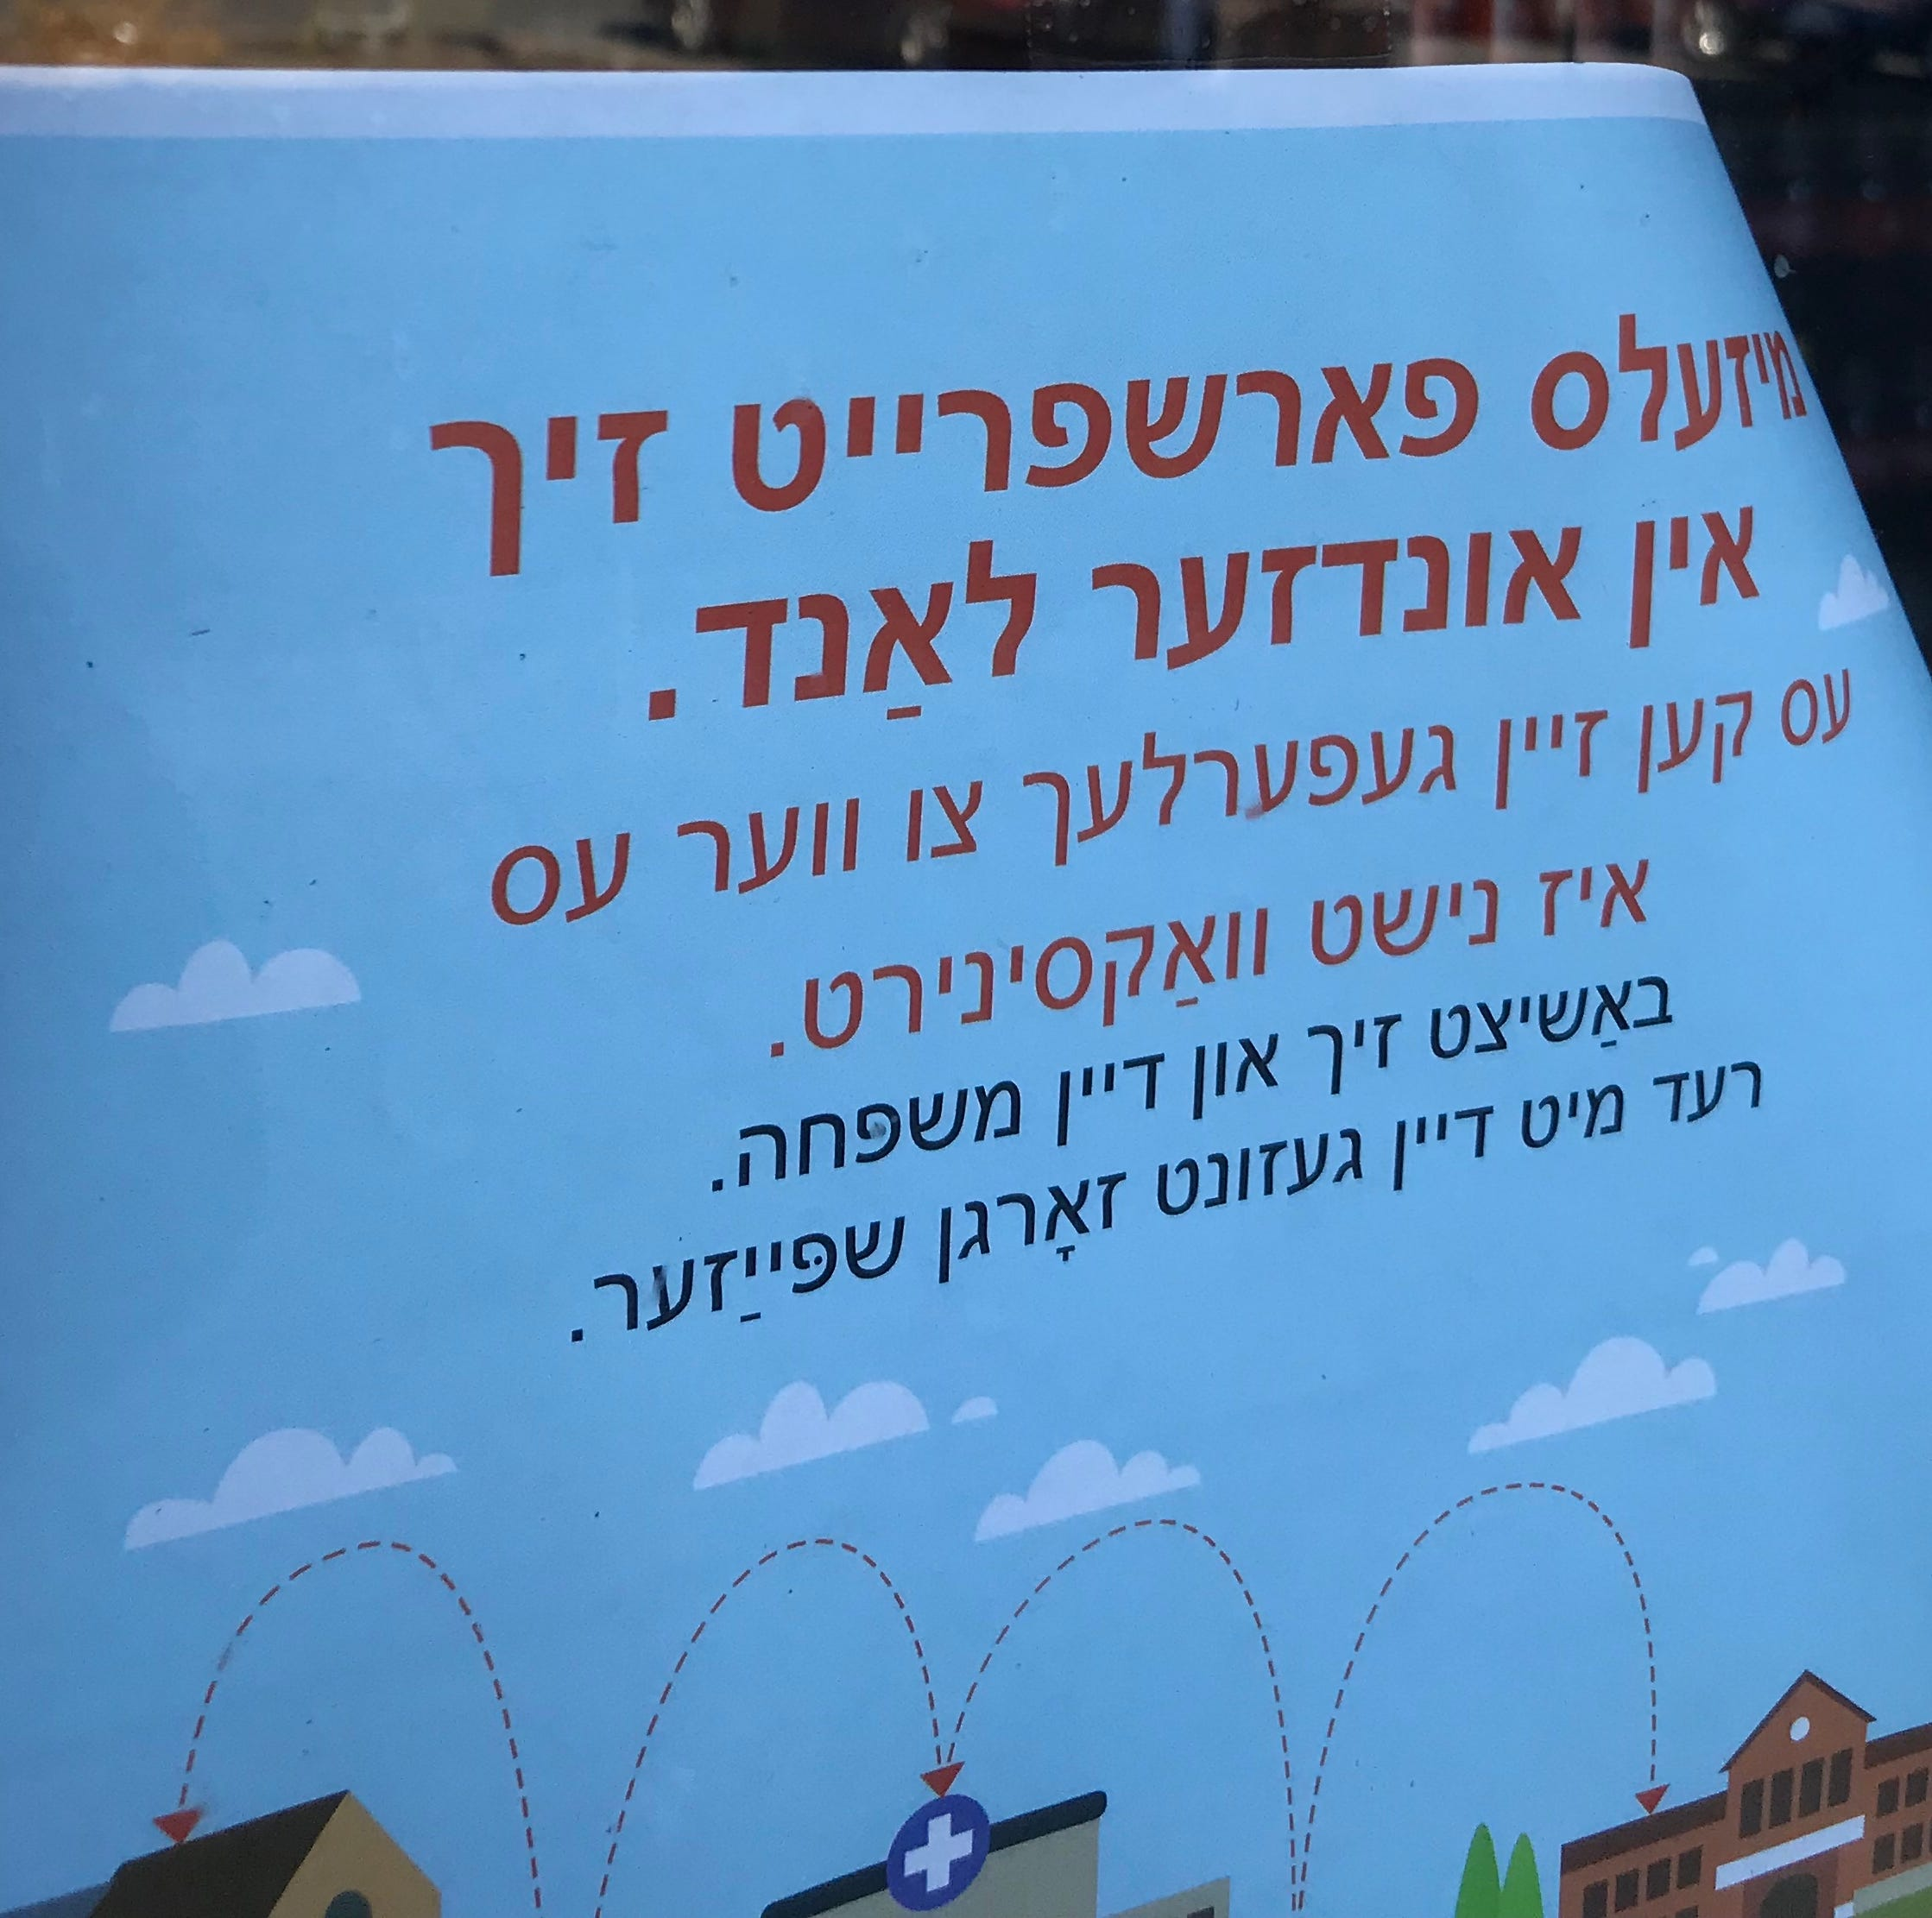 9 Rockland yeshivas face fines for failing to release student measles vaccination records